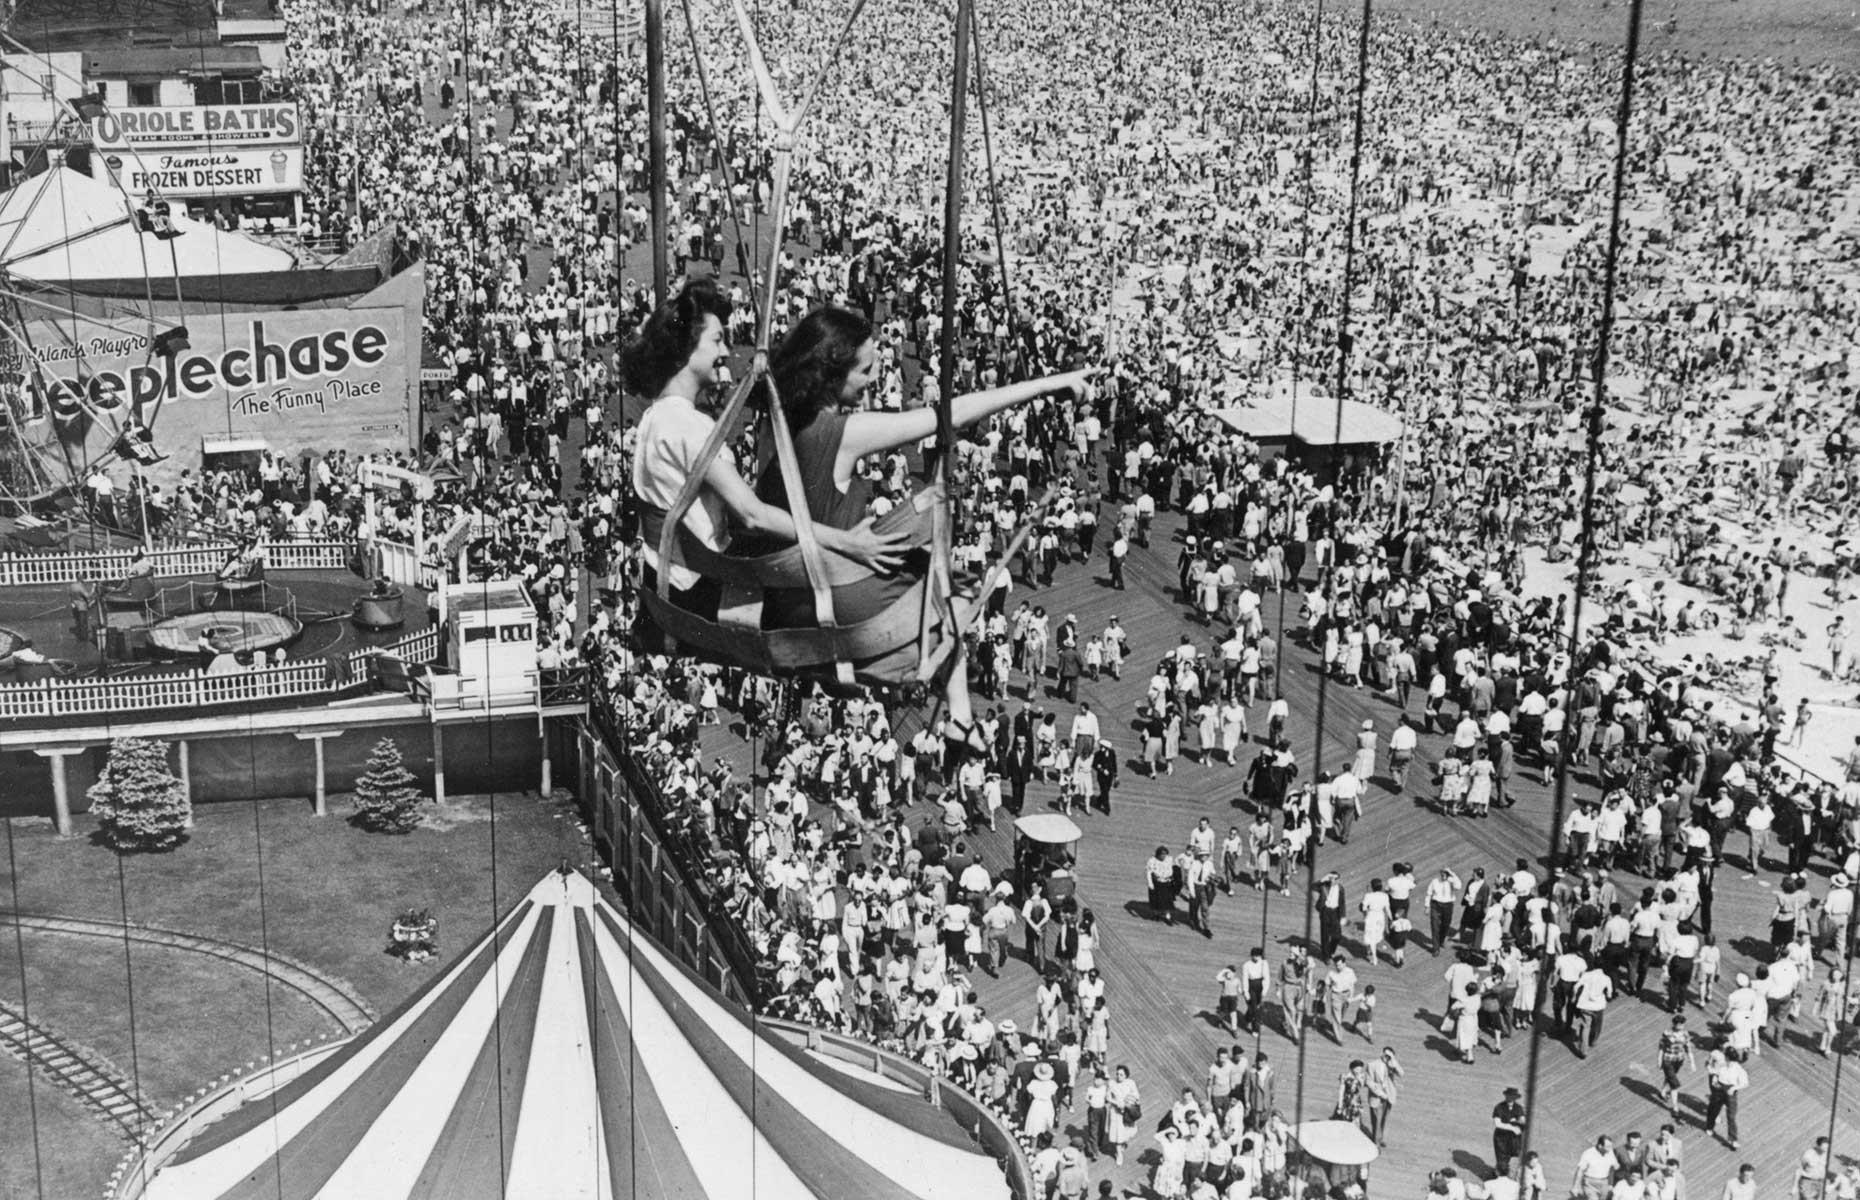 Slide 34 of 51: A buzzingamusement park complex located in New York City's borough of Brooklyn, Coney Island has been a thrill-seeker's paradise for more than 120 years. Steeplechase Park, Luna Park and Dreamland were its first parks, opening in 1897, 1903 and 1904 respectively, although Luna Park was destroyed by a fire in 1944. Pictured here are some daring park-goers in 1946. See more of America's most historic attractions in their heyday.